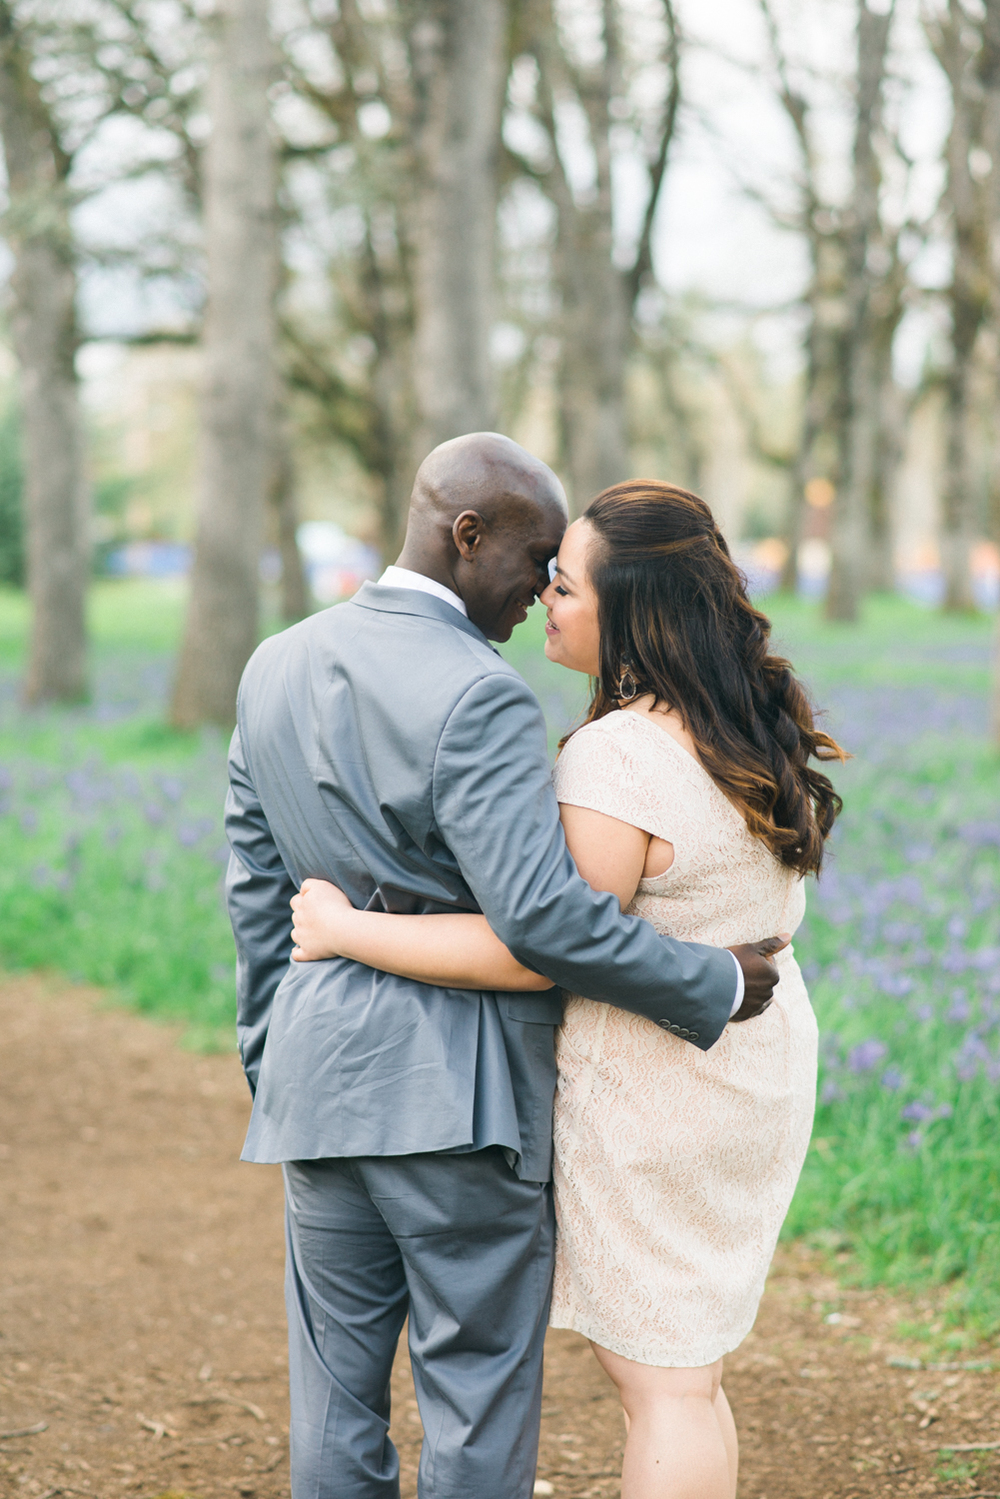 romantic-salem-engagement-photos-bush-park-shelley-marie-photo-18